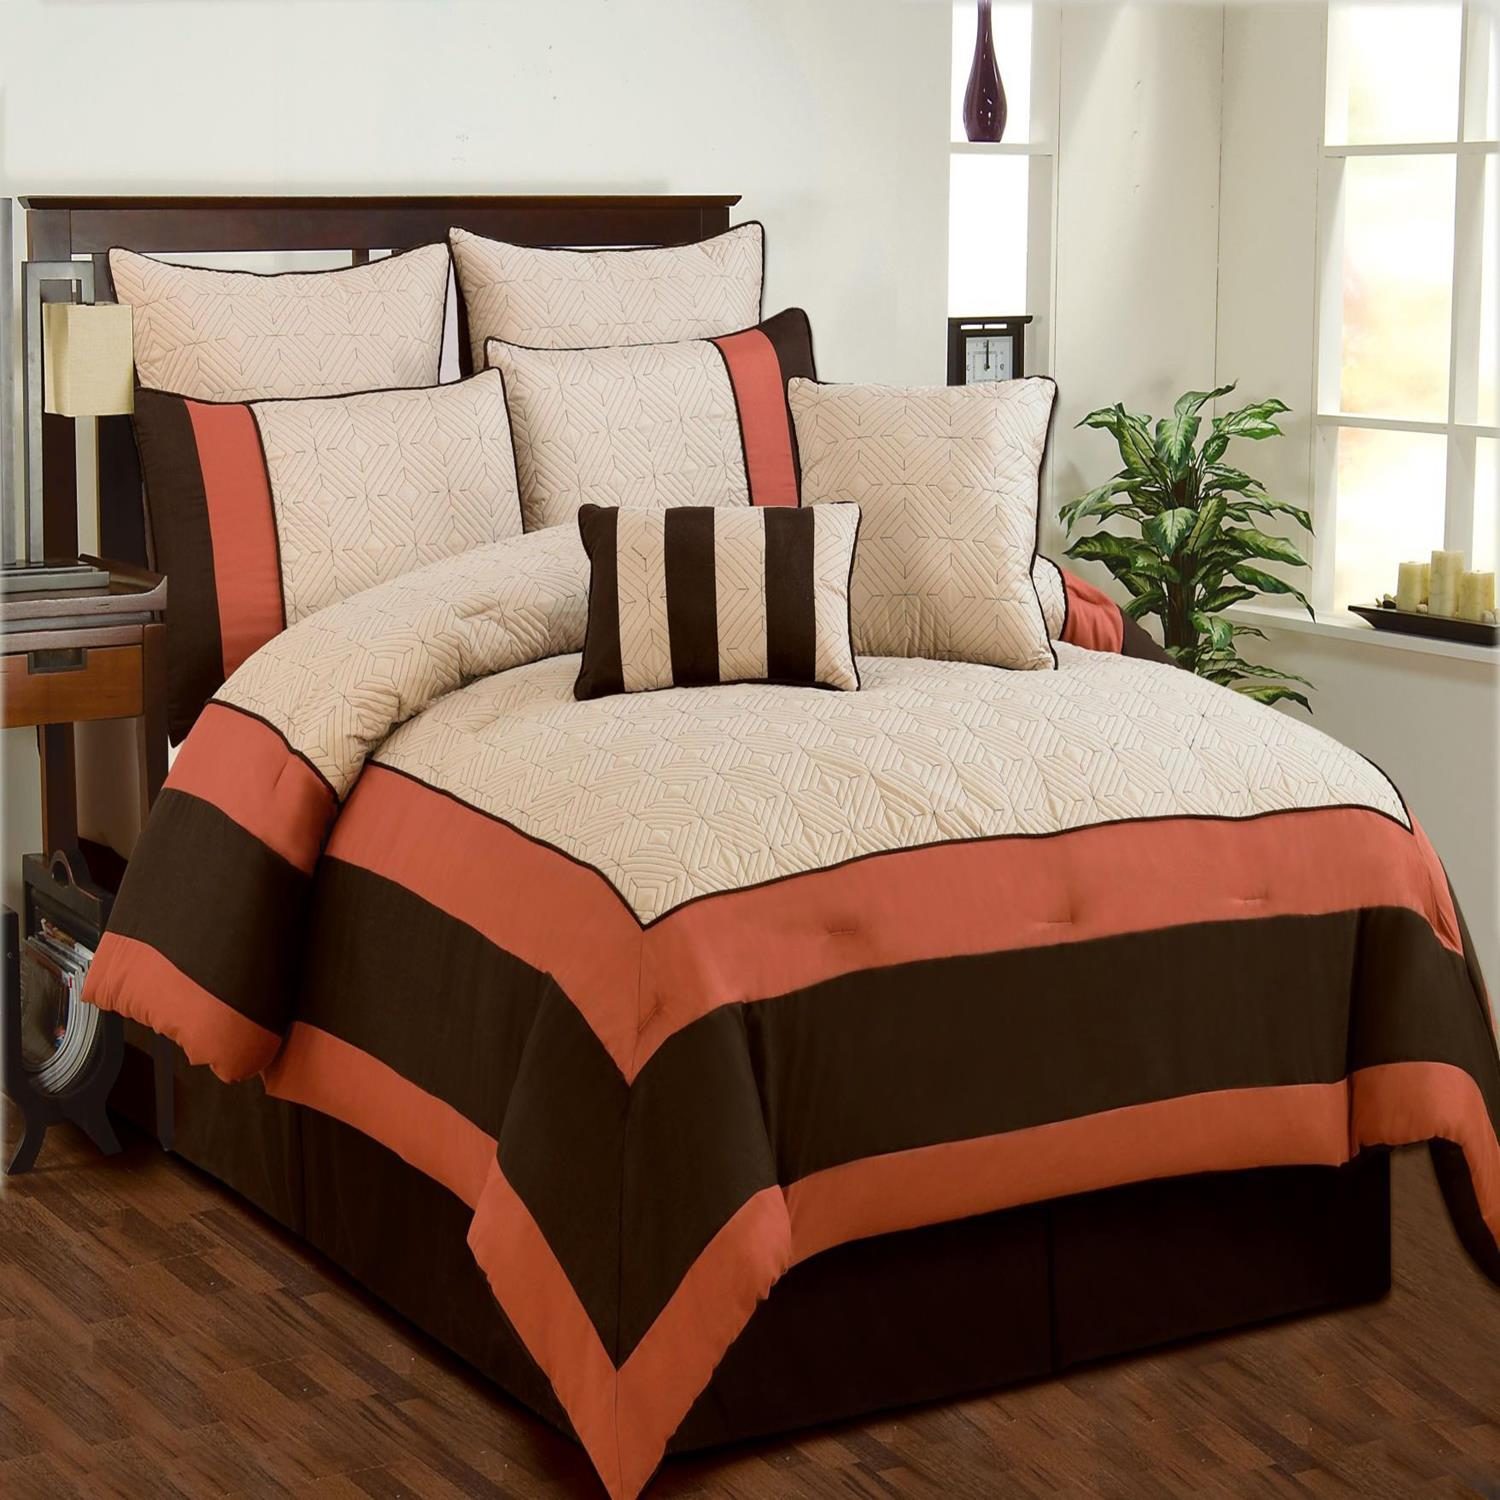 Aspen Beige Brown Coral Quilted forter Bed In A Bag